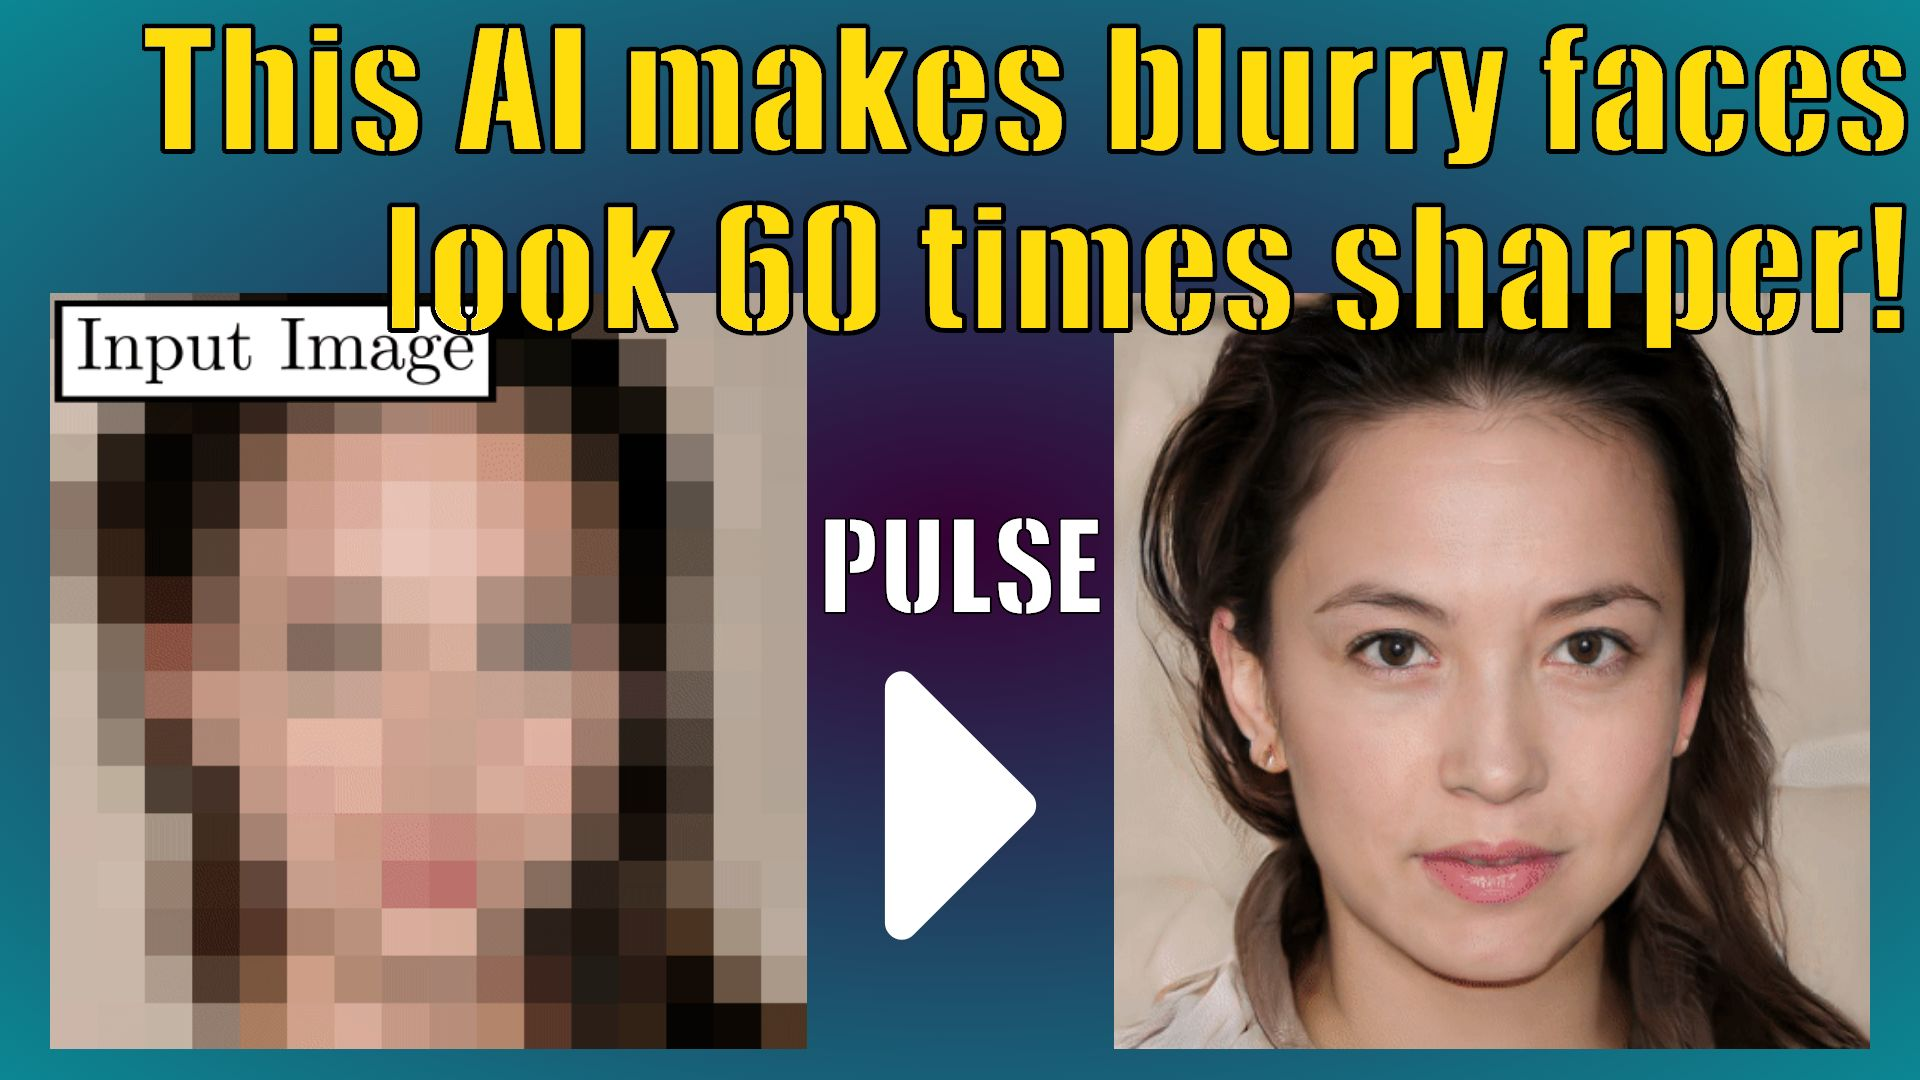 /pulse-photo-upsampling-makes-blurry-faces-60-times-sharper-s32p32px feature image